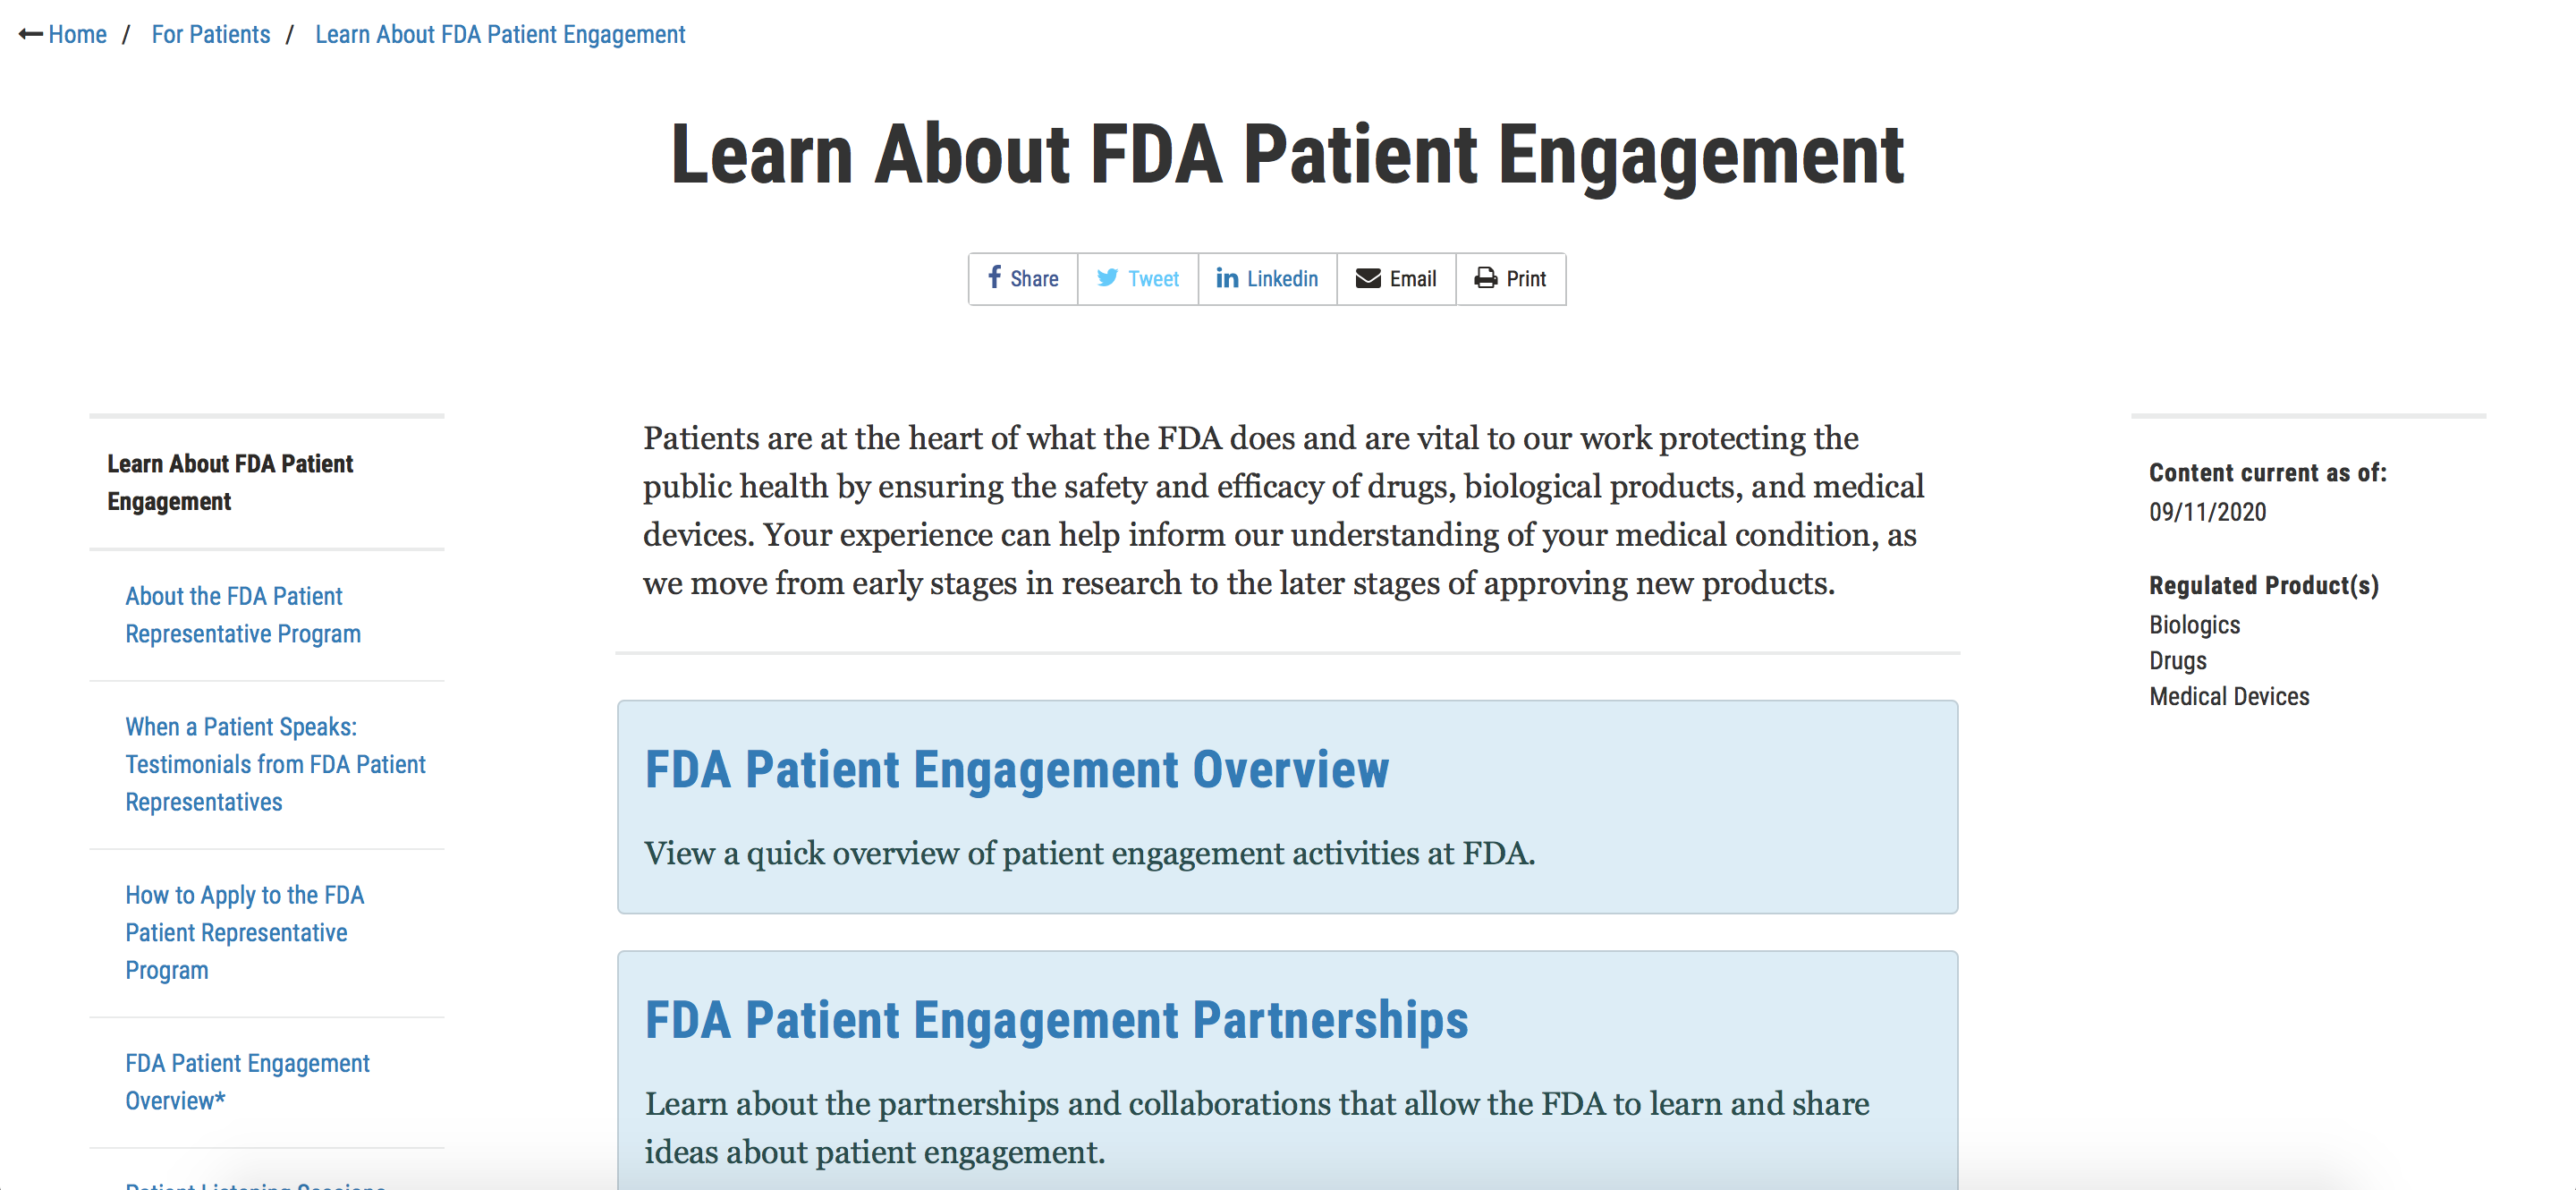 FDA-Patient-Engagement image